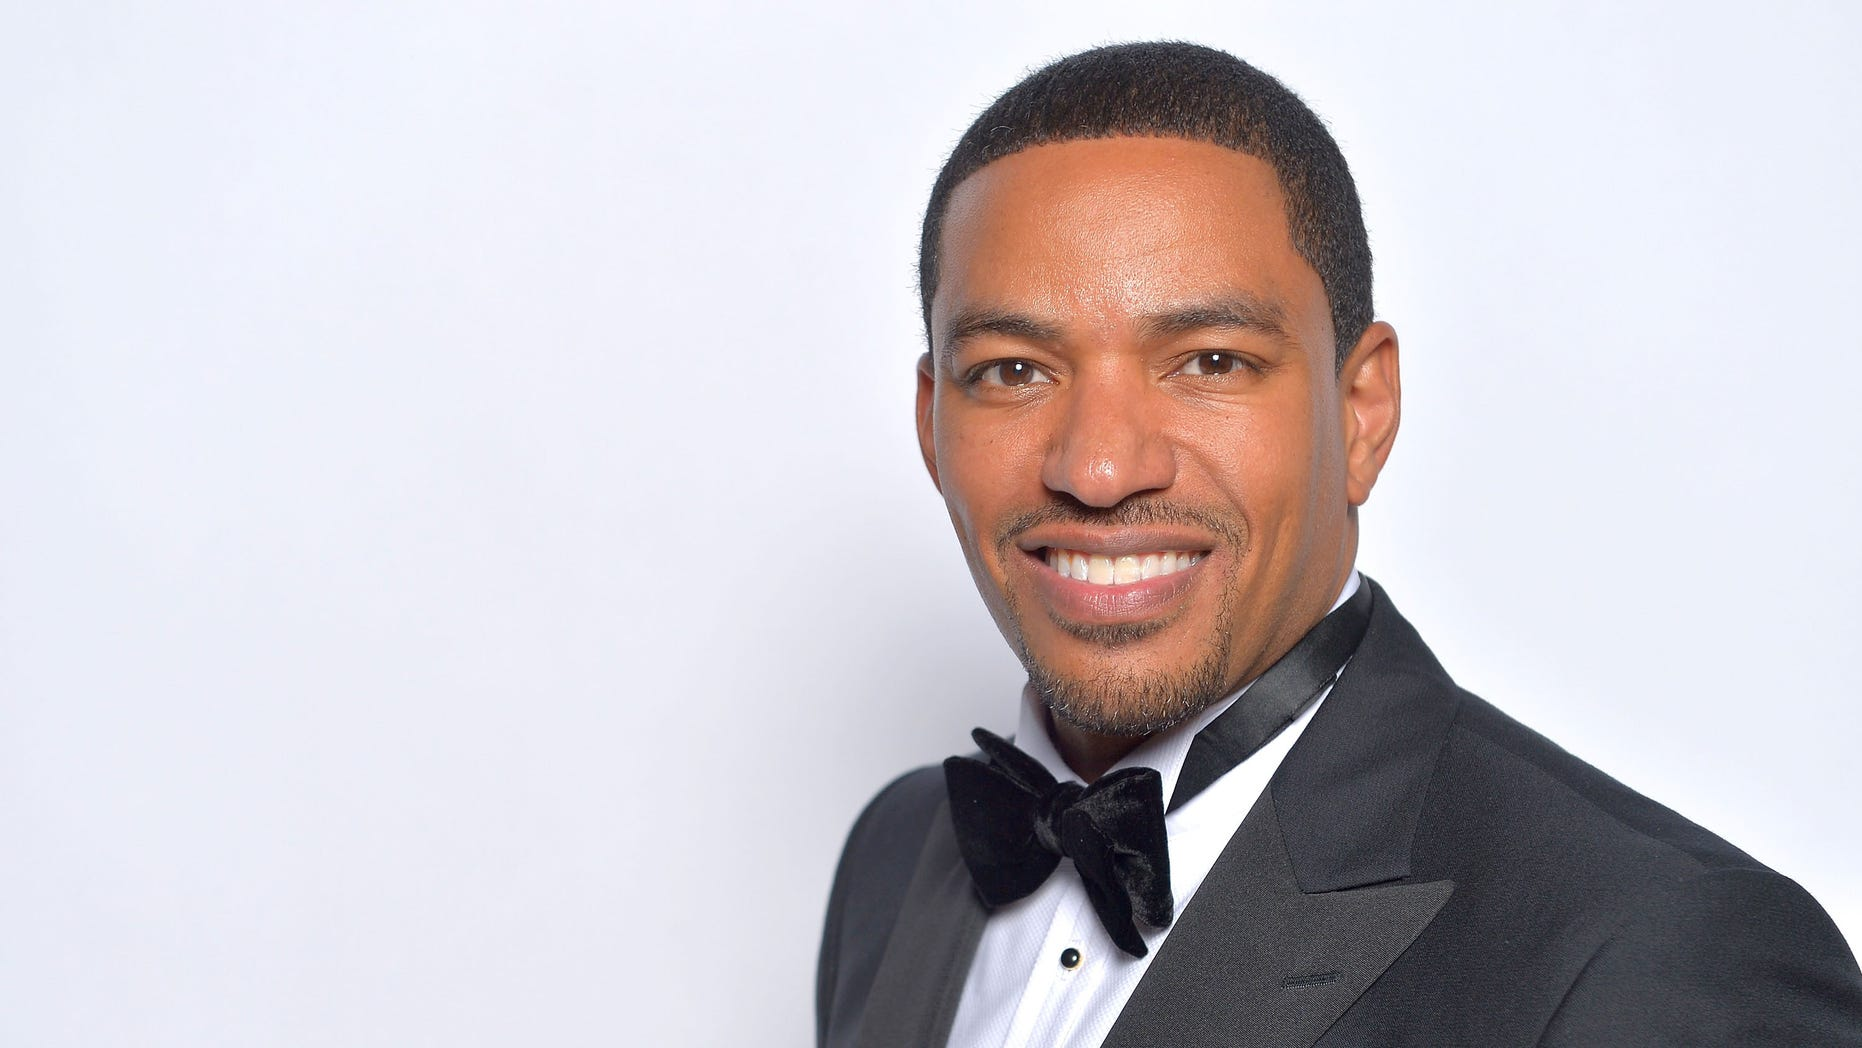 LOS ANGELES, CA - FEBRUARY 01:  Actor Laz Alonso poses for a portrait during the 44th NAACP Image Awards at The Shrine Auditorium on February 1, 2013 in Los Angeles, California.  (Photo by Charley Gallay/Getty Images for NAACP Image Awards)